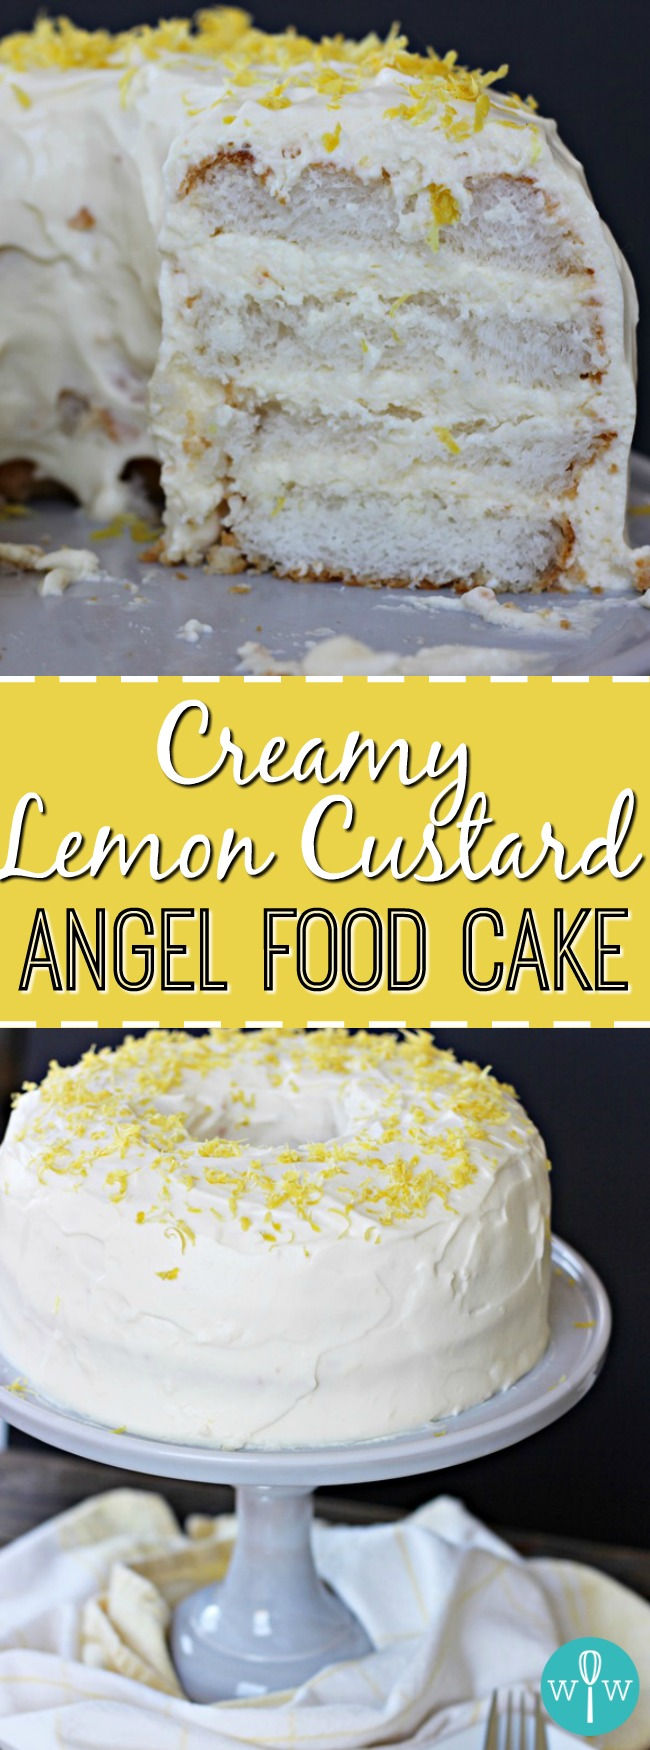 Angel Food Cake Refrigerate